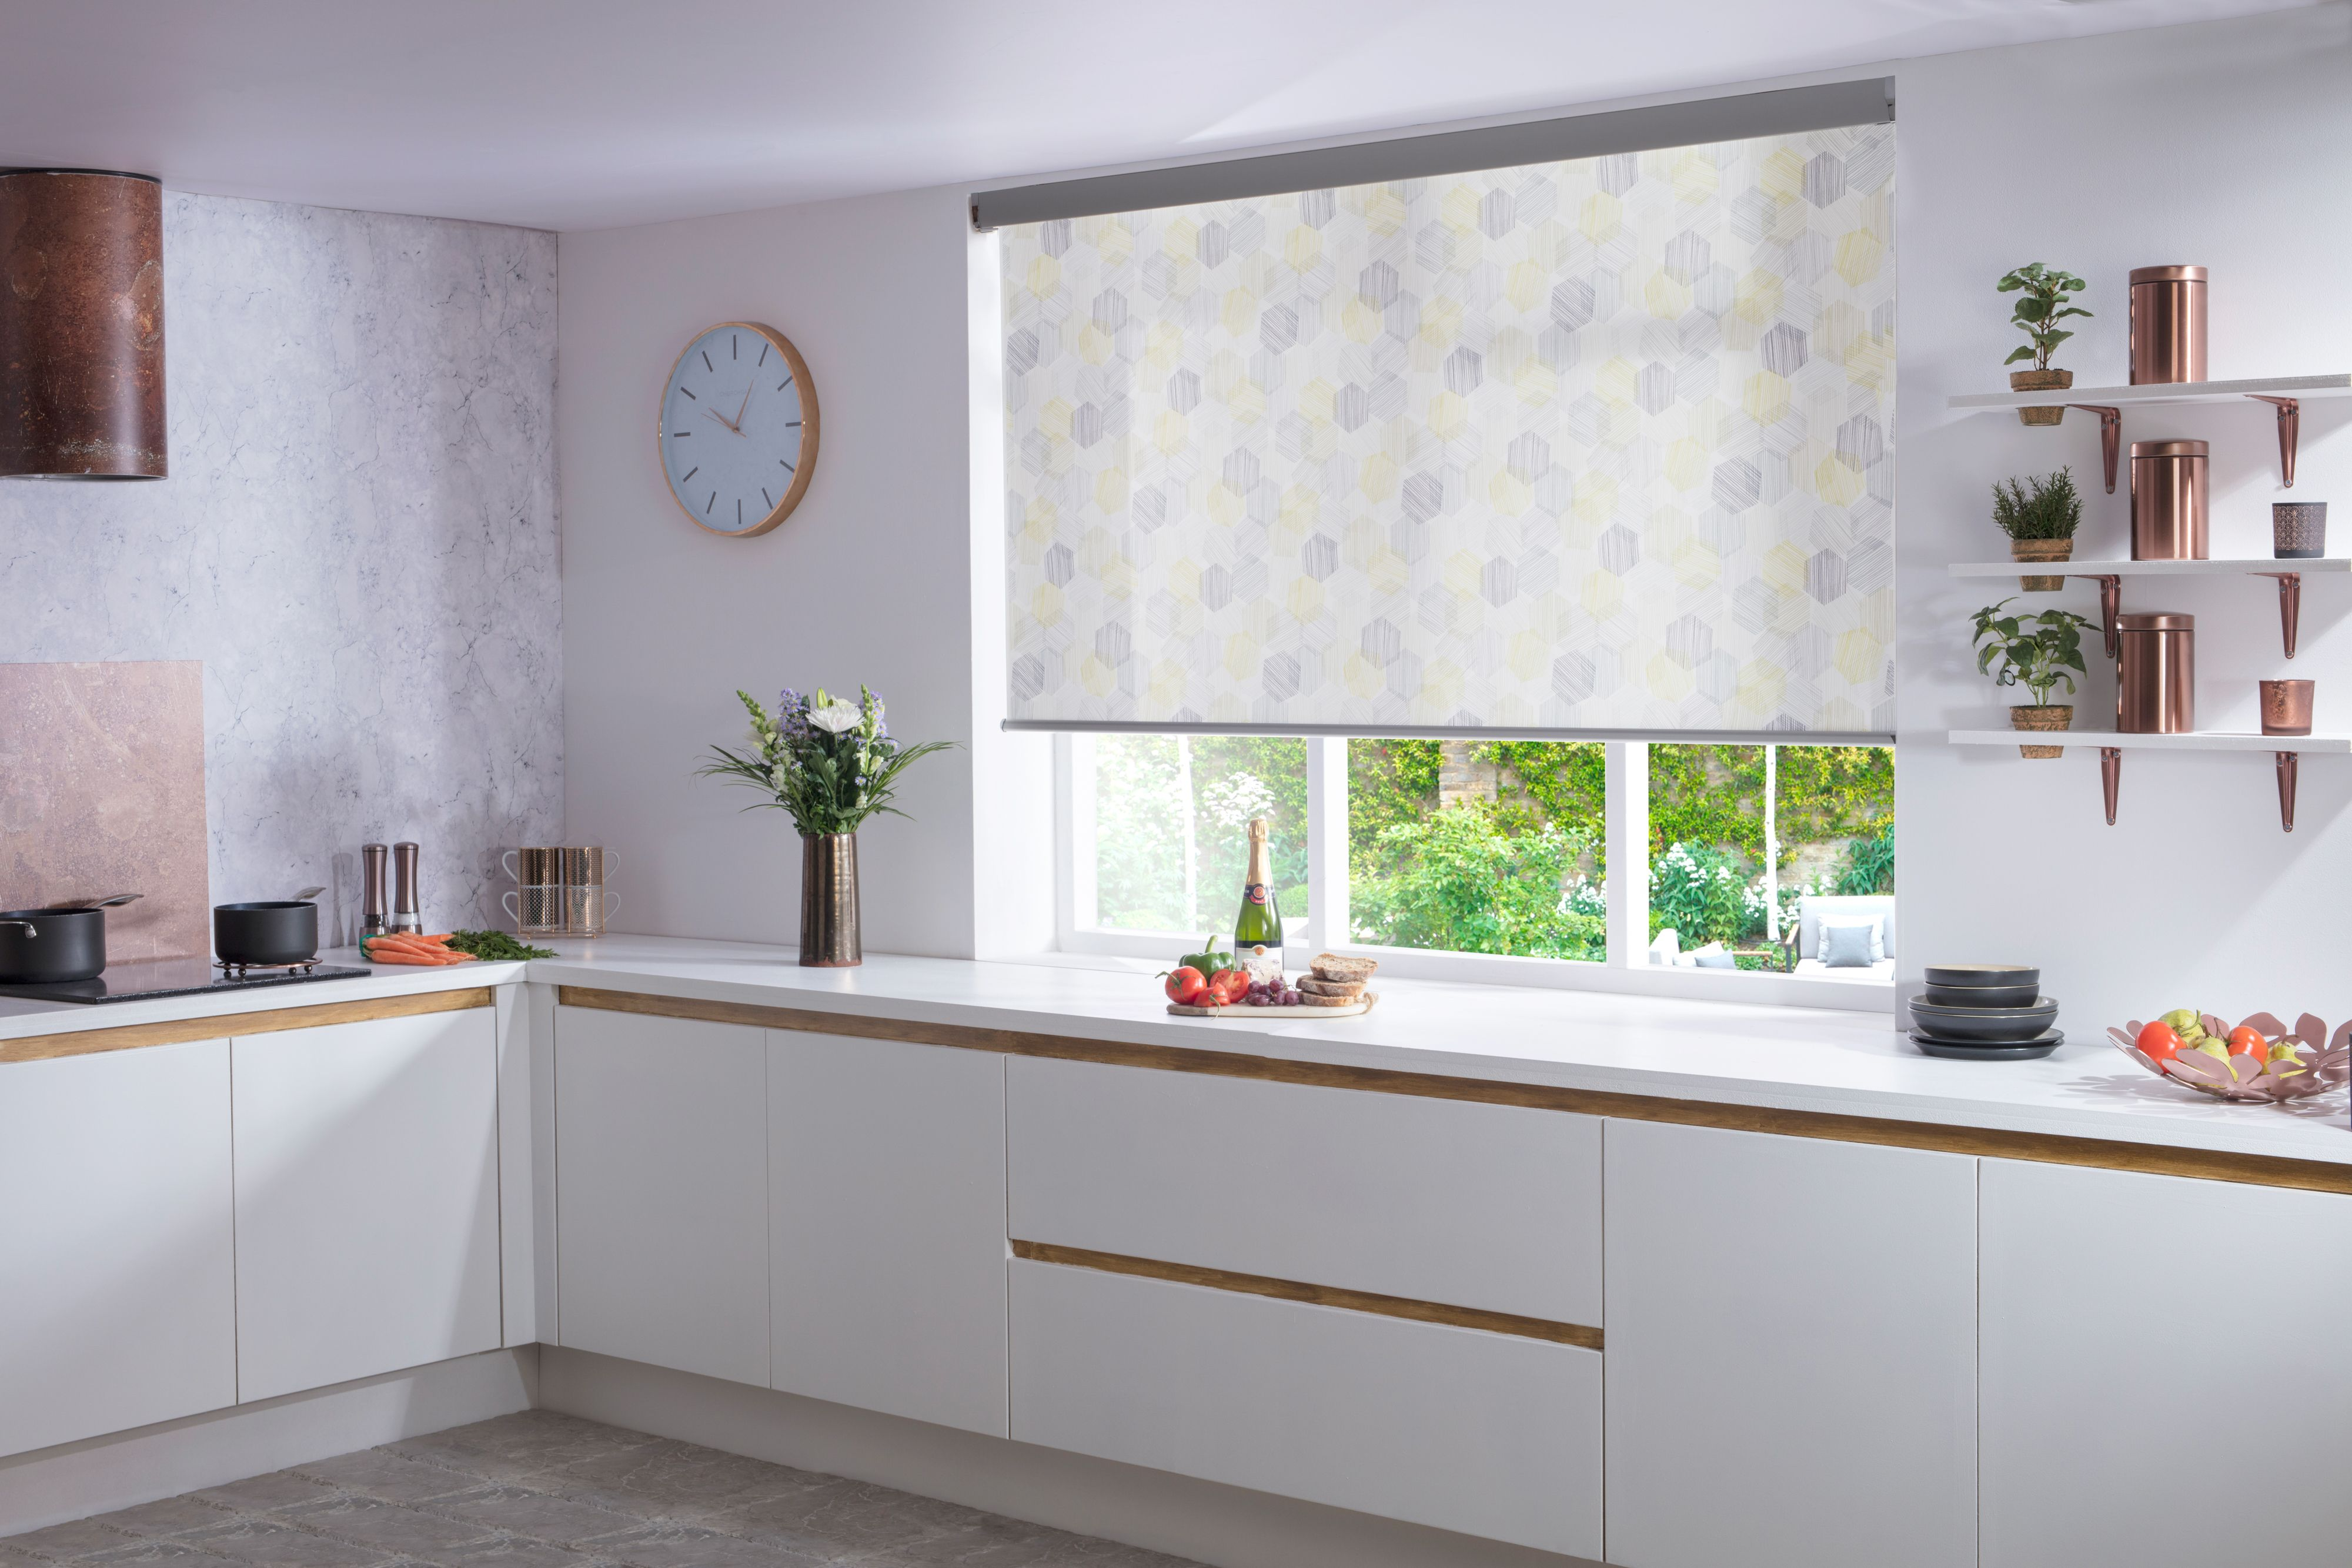 Hexagon yellow kitchen roller blind from Style Studio ...